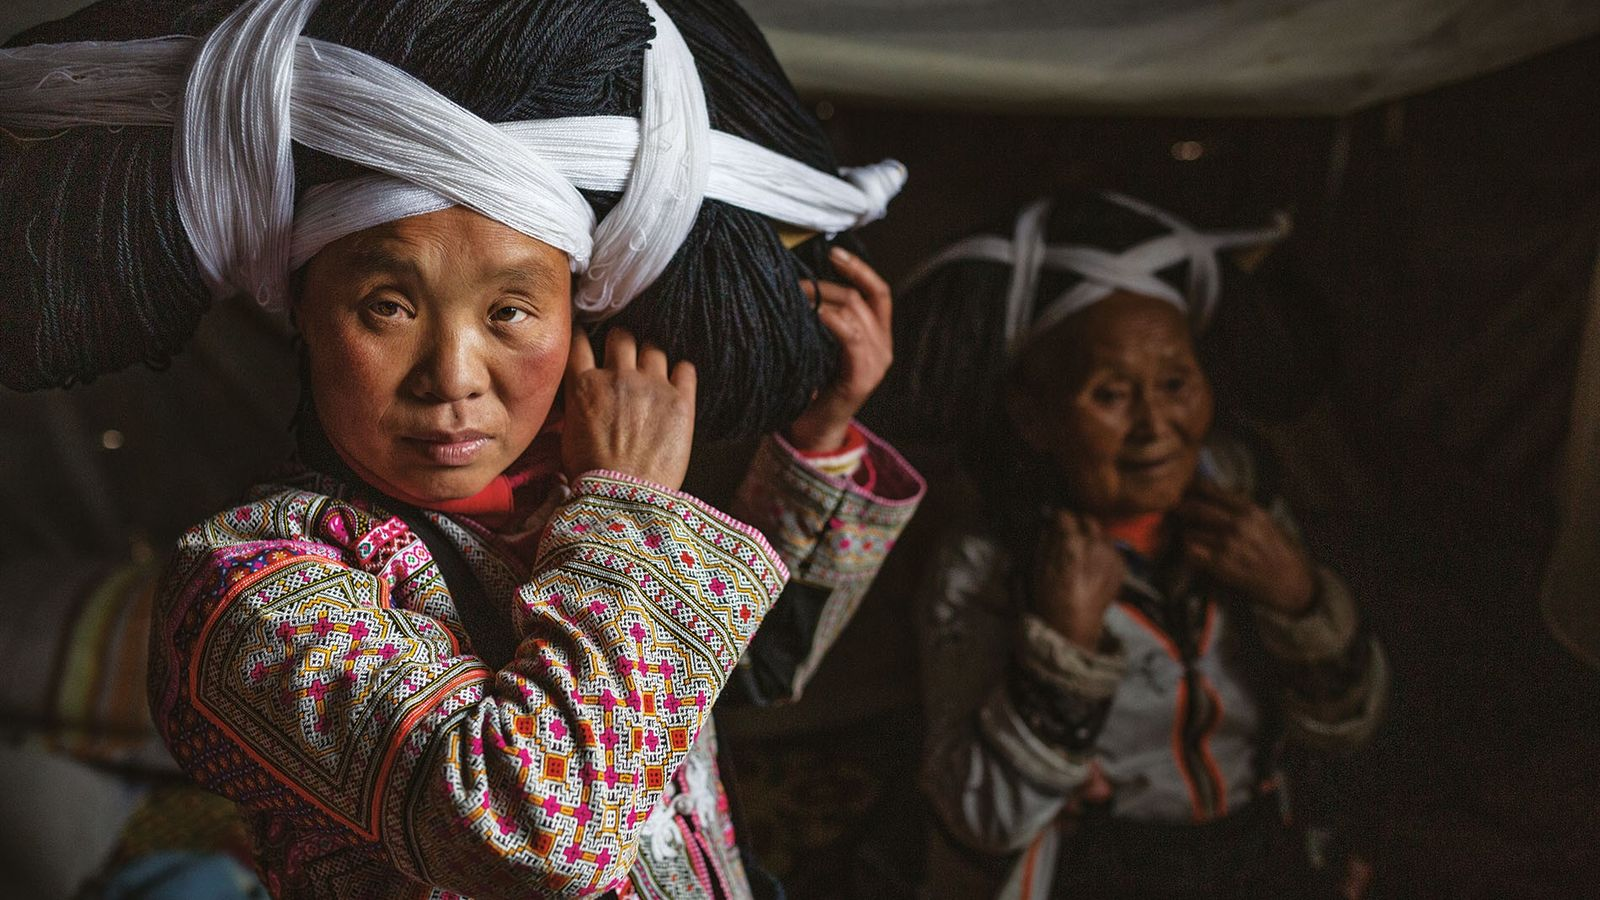 Women of the Longhorn Miao tribe in Guizhou province